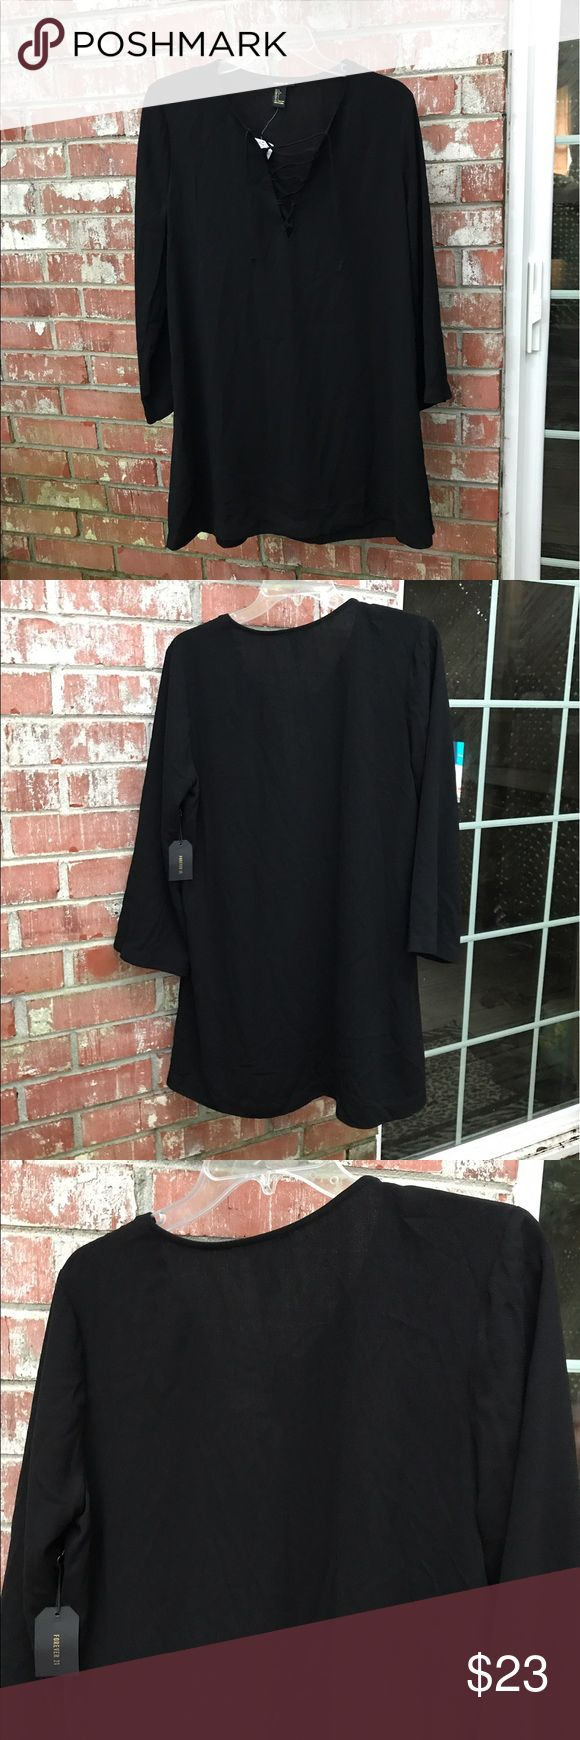 ⚡️F21 Black Tunic Dress Lace Up/Tie Up V-neck. A slight bell sleeve. Cute but runs a little small like a PL or oversized M. Forever 21 Dresses Long Sleeve